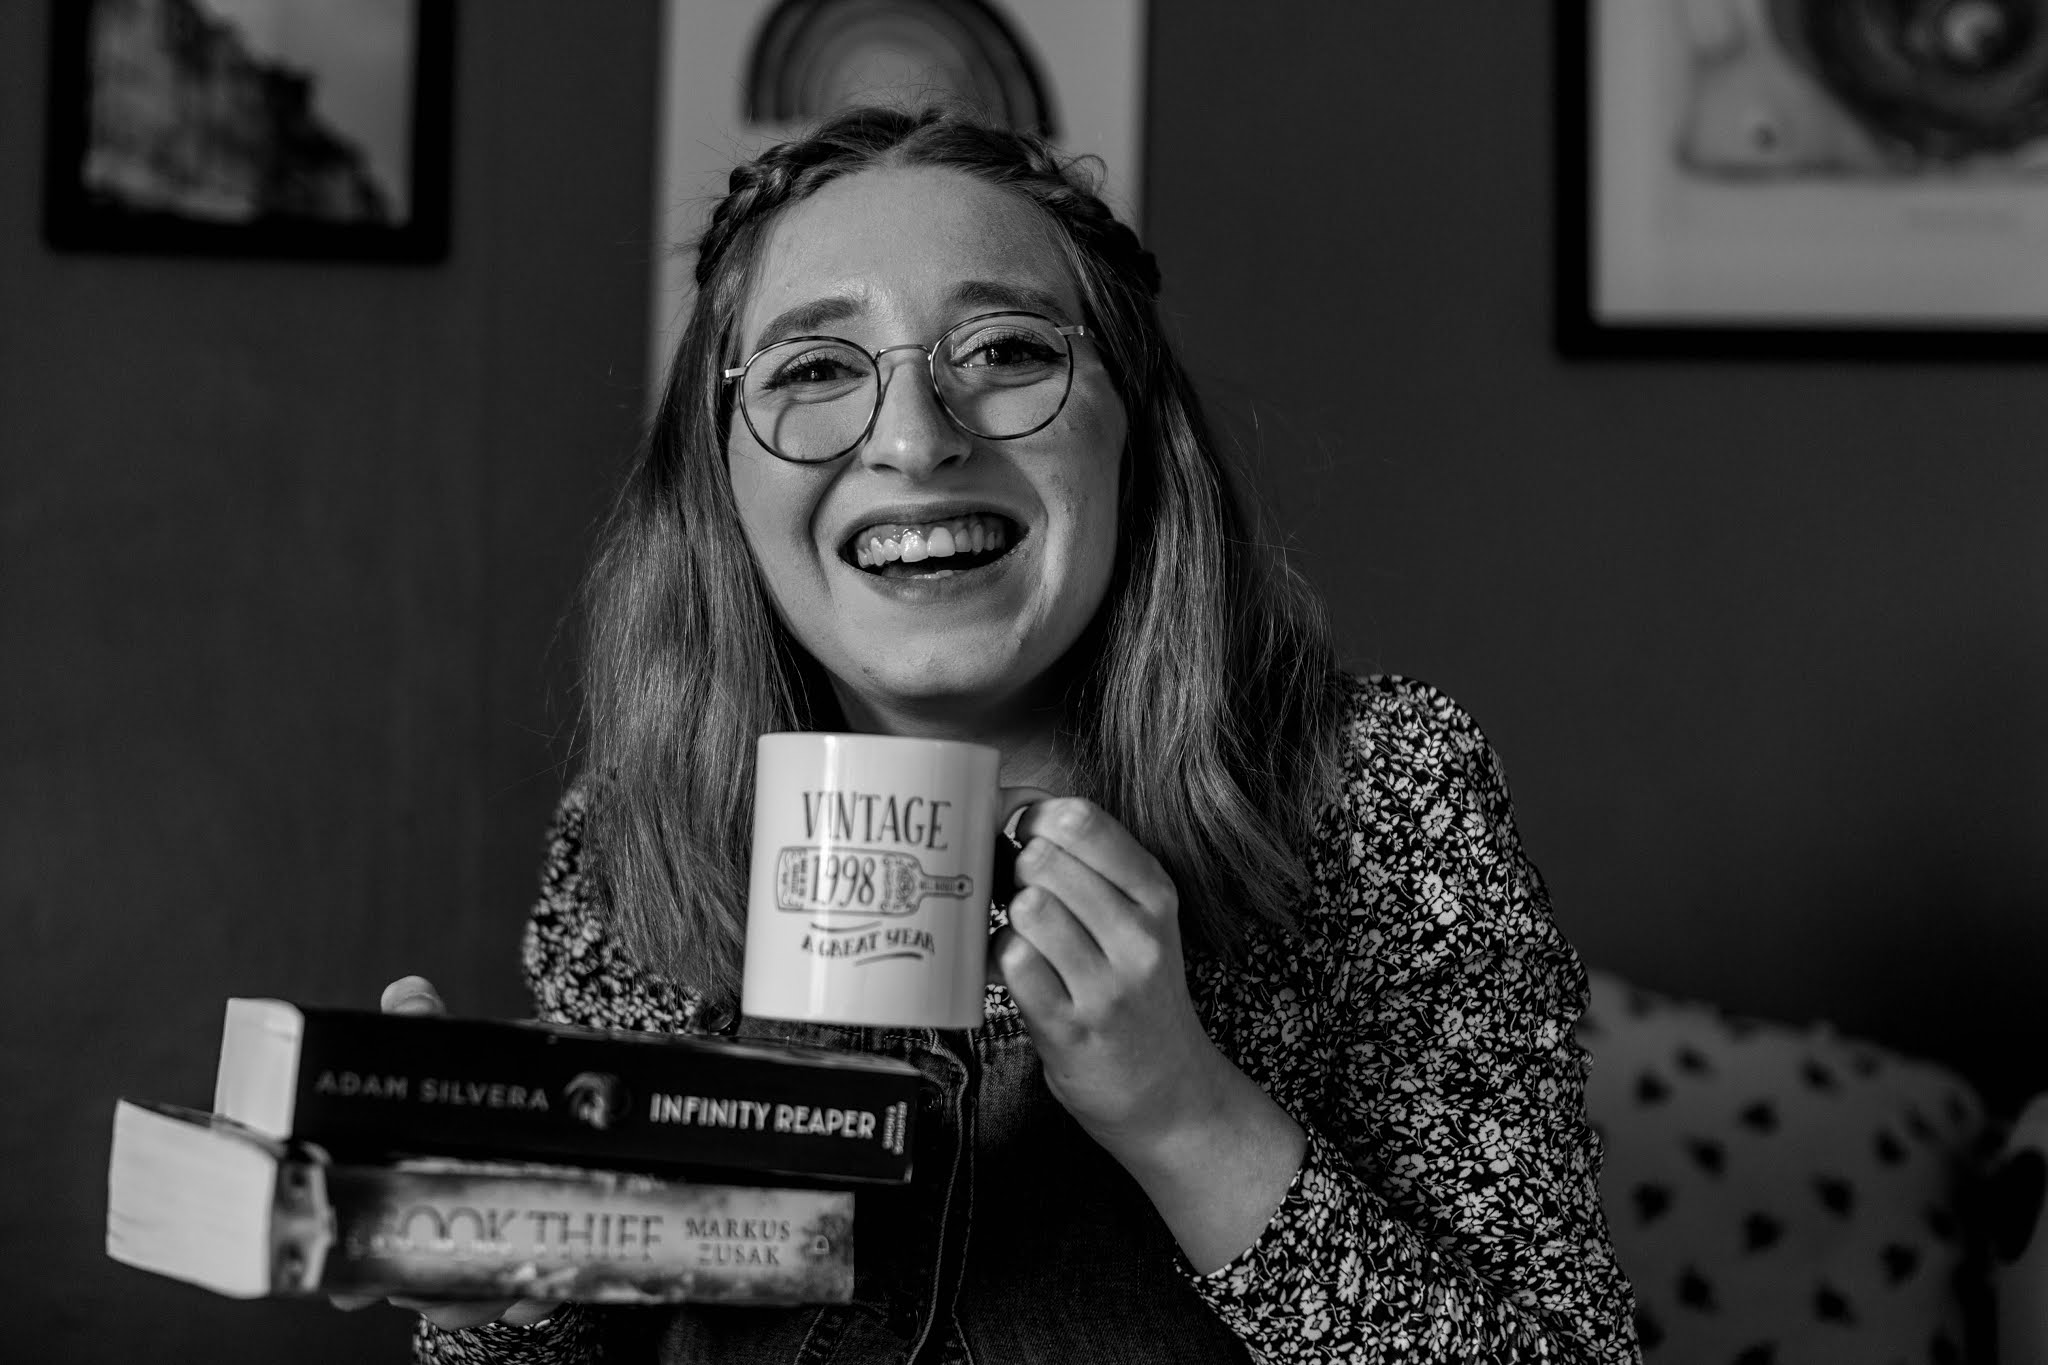 black and white photo of girl smiling while holding book stack and white mug